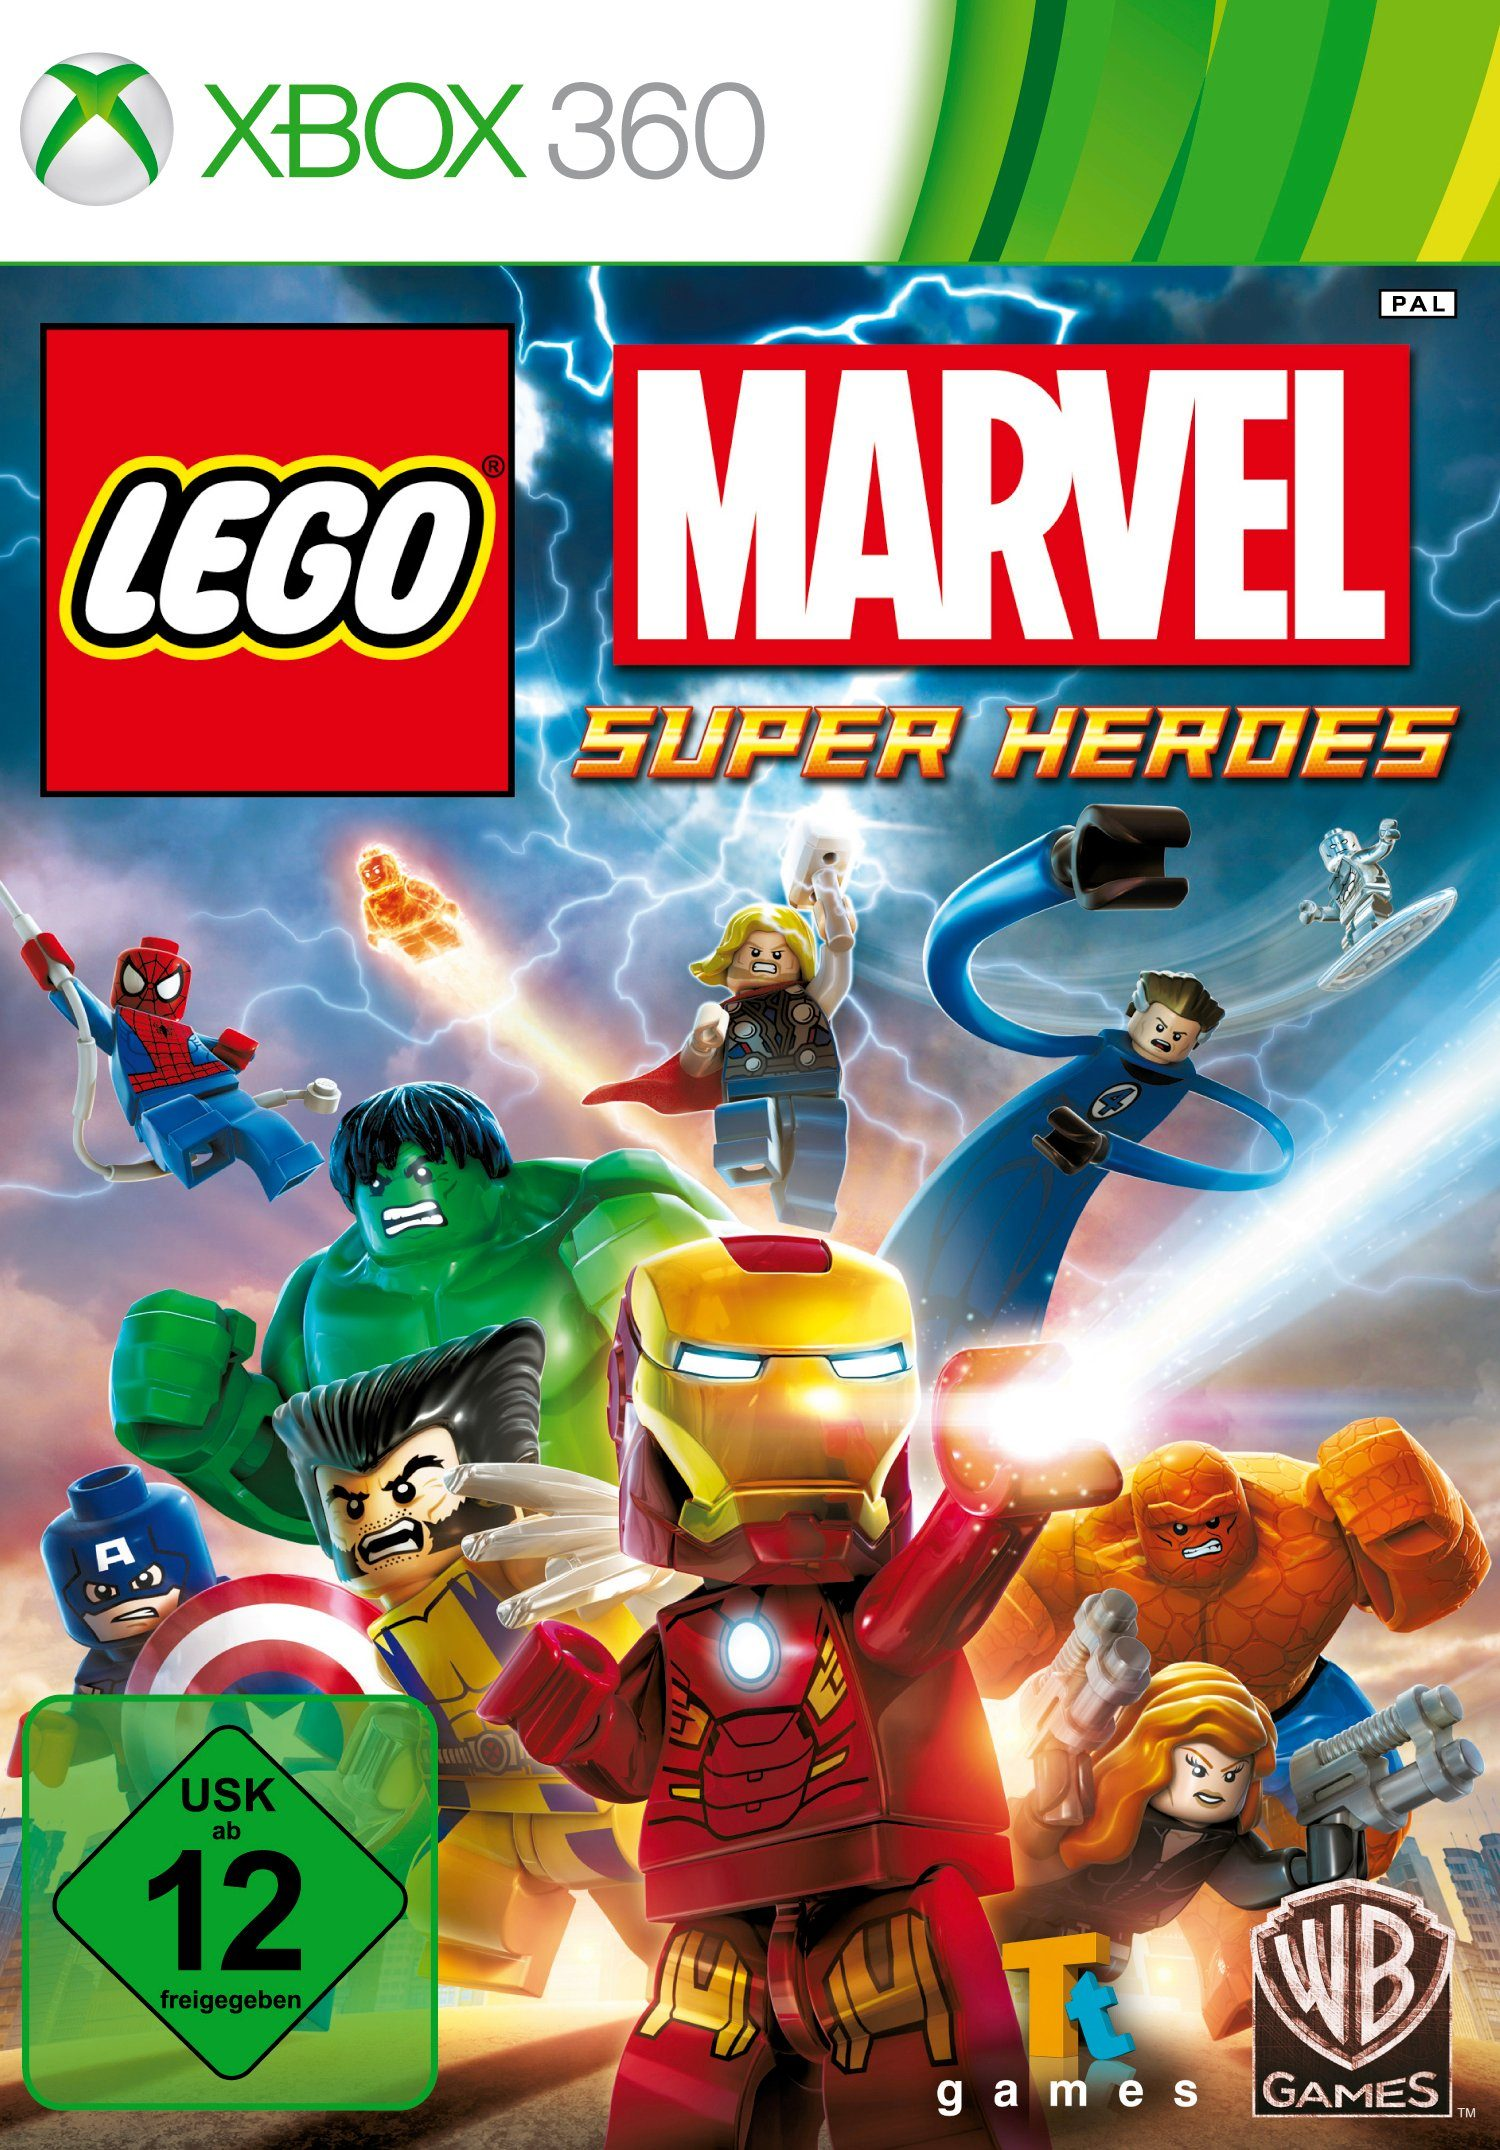 Warner Games Software Pyramide - Xbox 360 Spiel »LEGO Marvel Super Heroes«